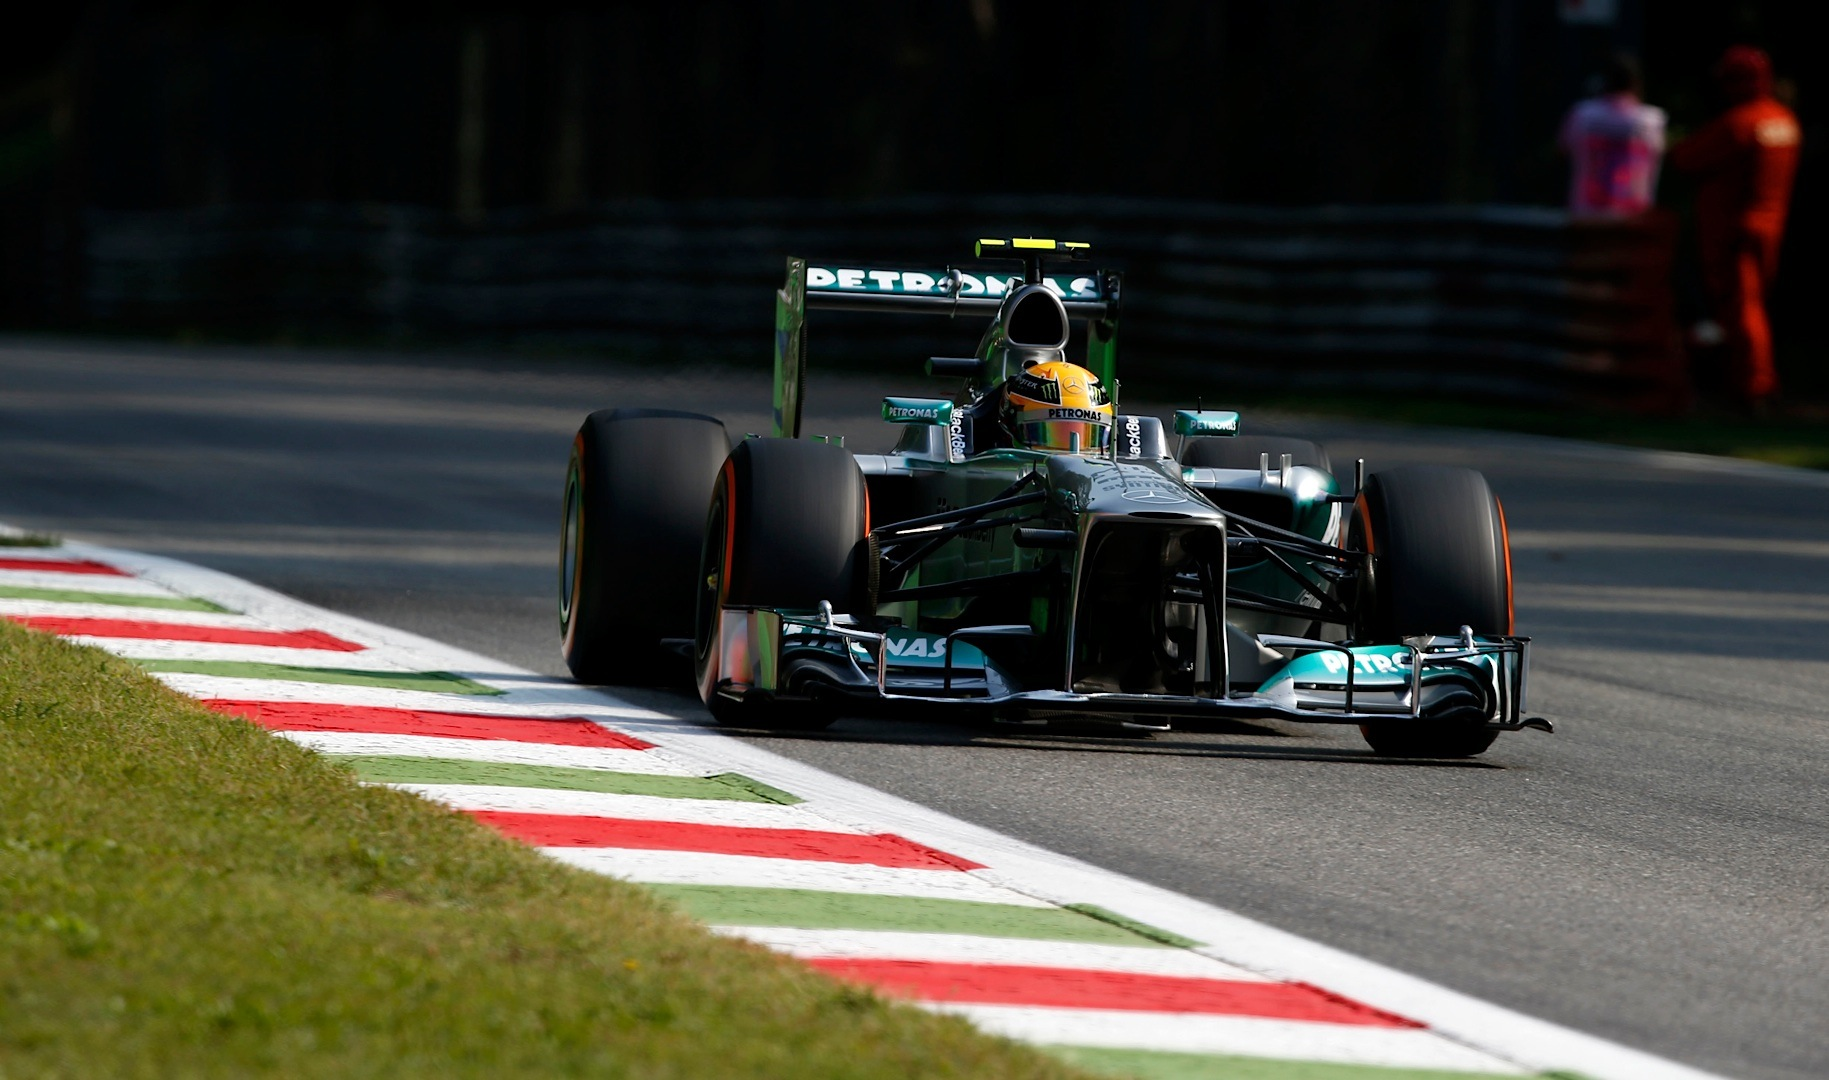 mercedes amg petronas team has trouble free monza practice autoevolution. Black Bedroom Furniture Sets. Home Design Ideas